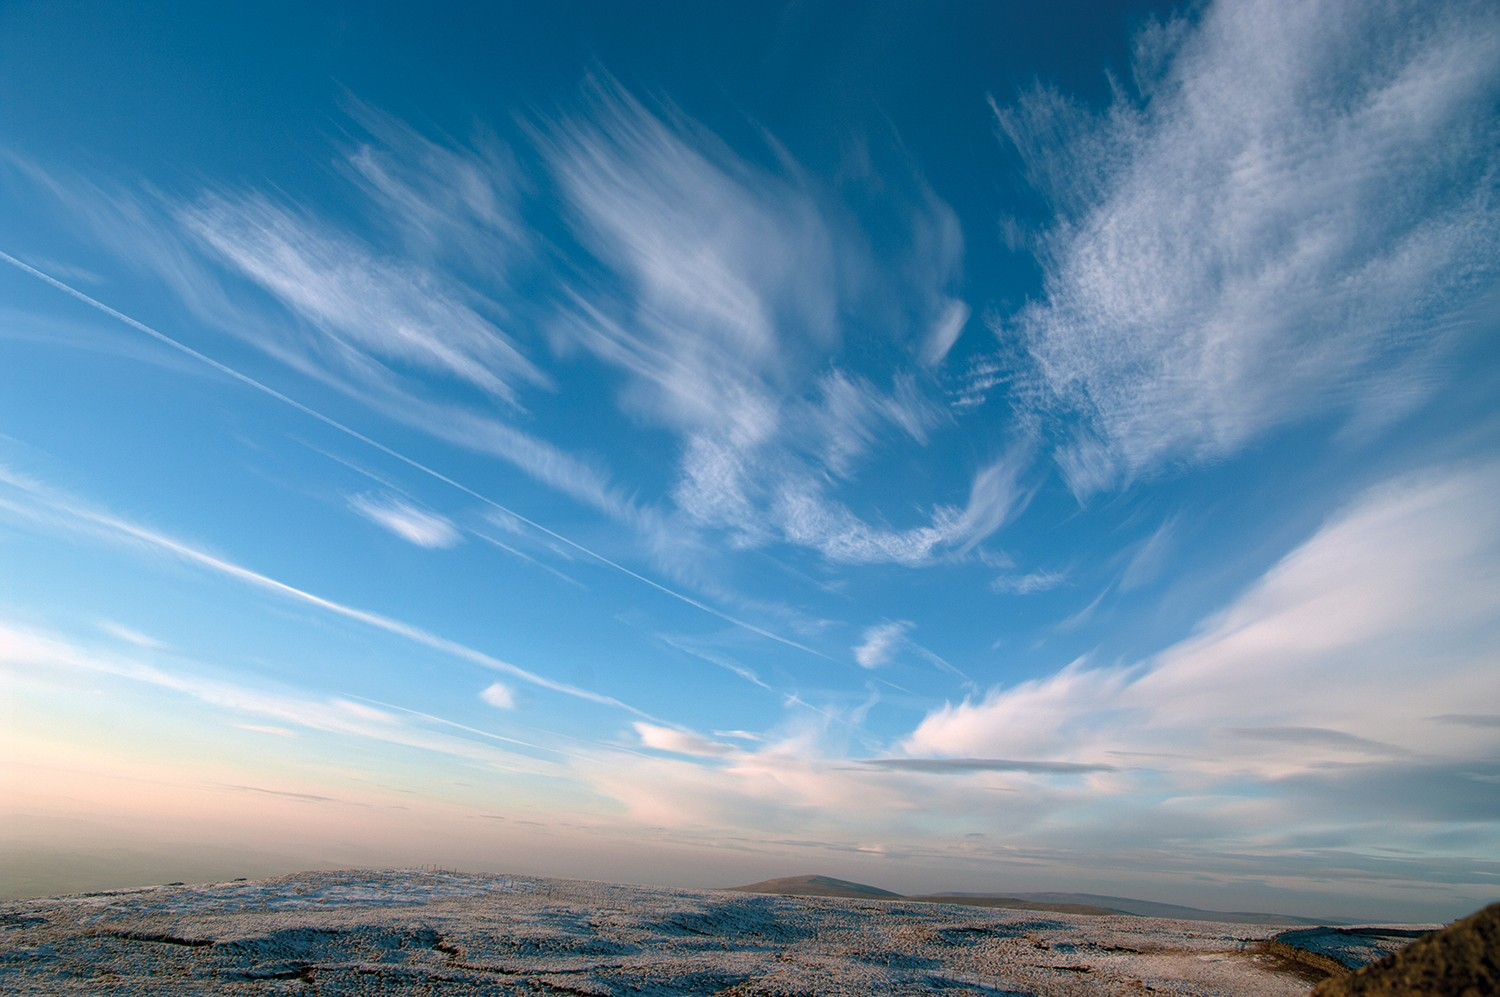 A landscape photo with wispy clouds.